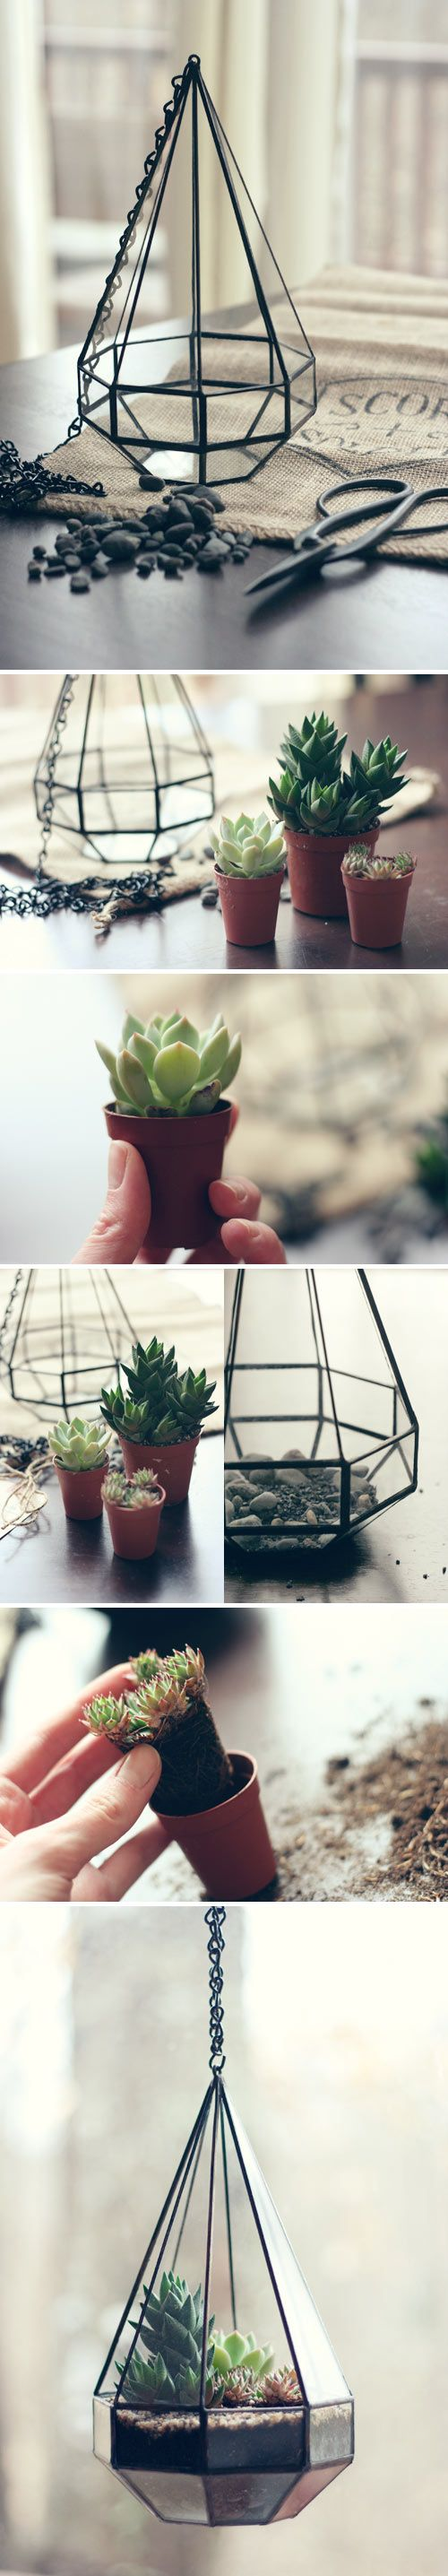 21 Simple Ideas for Terrariums